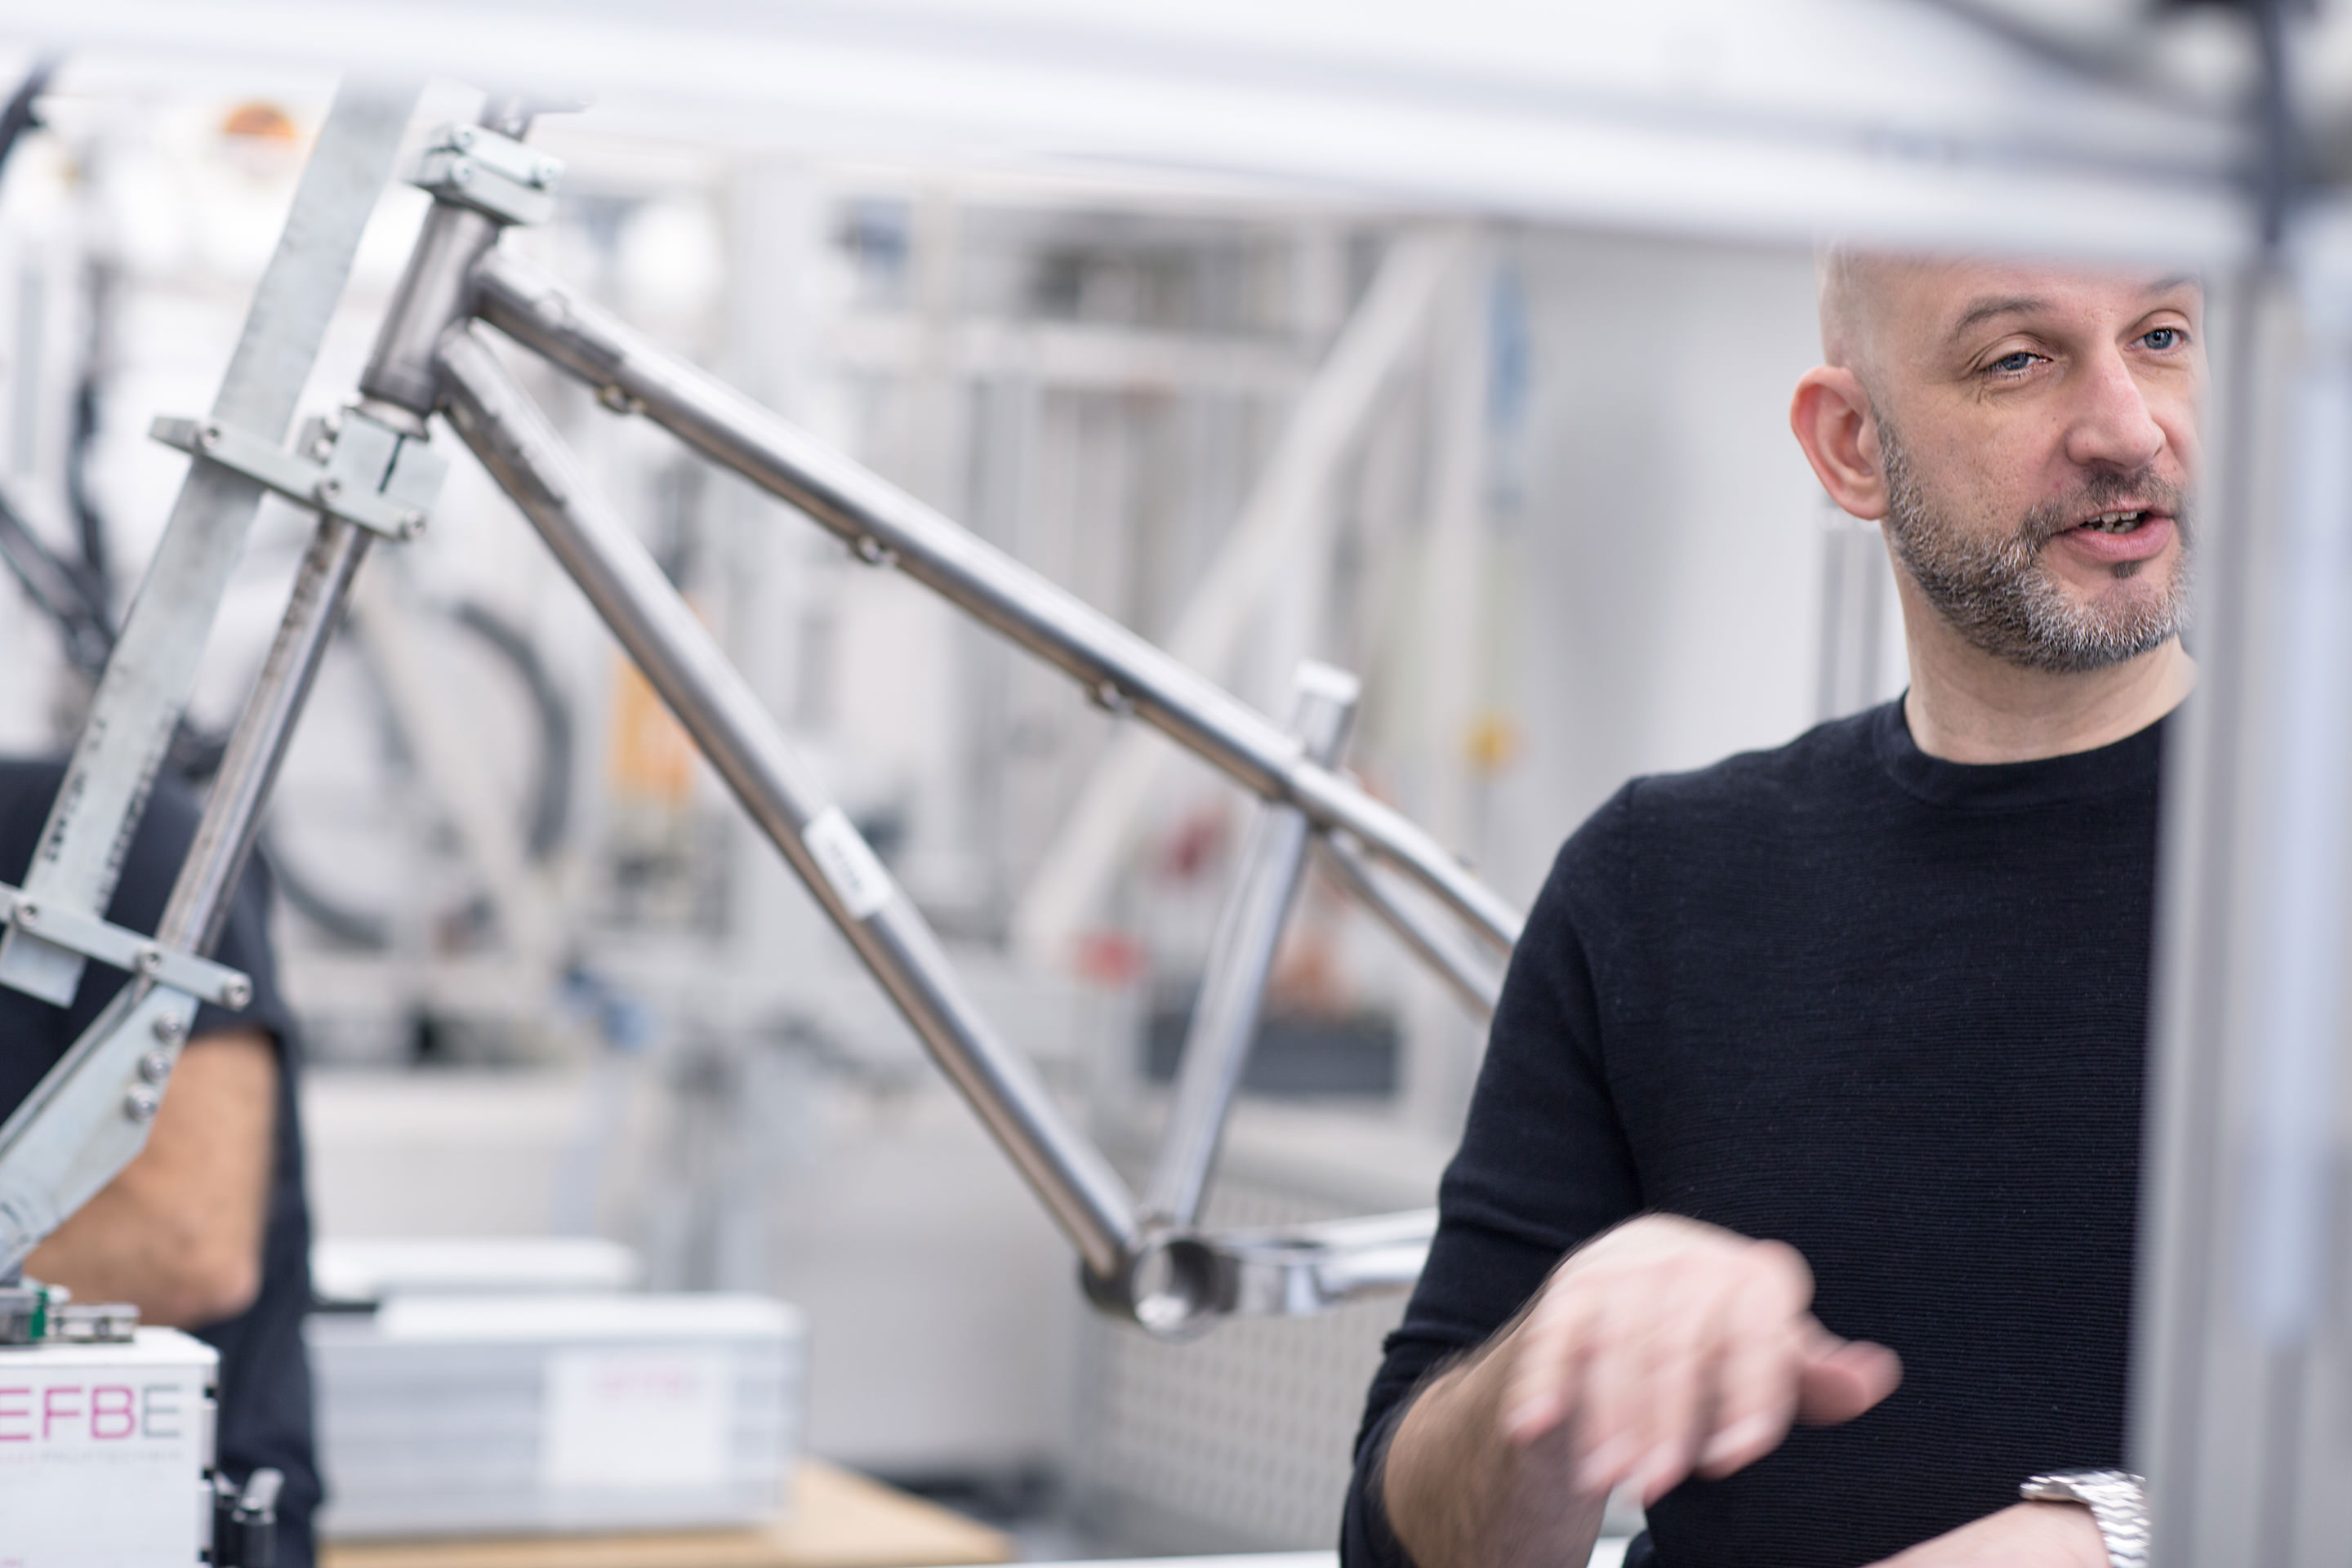 EFBE CEO Marcus Schroeder in the bicycle test lab